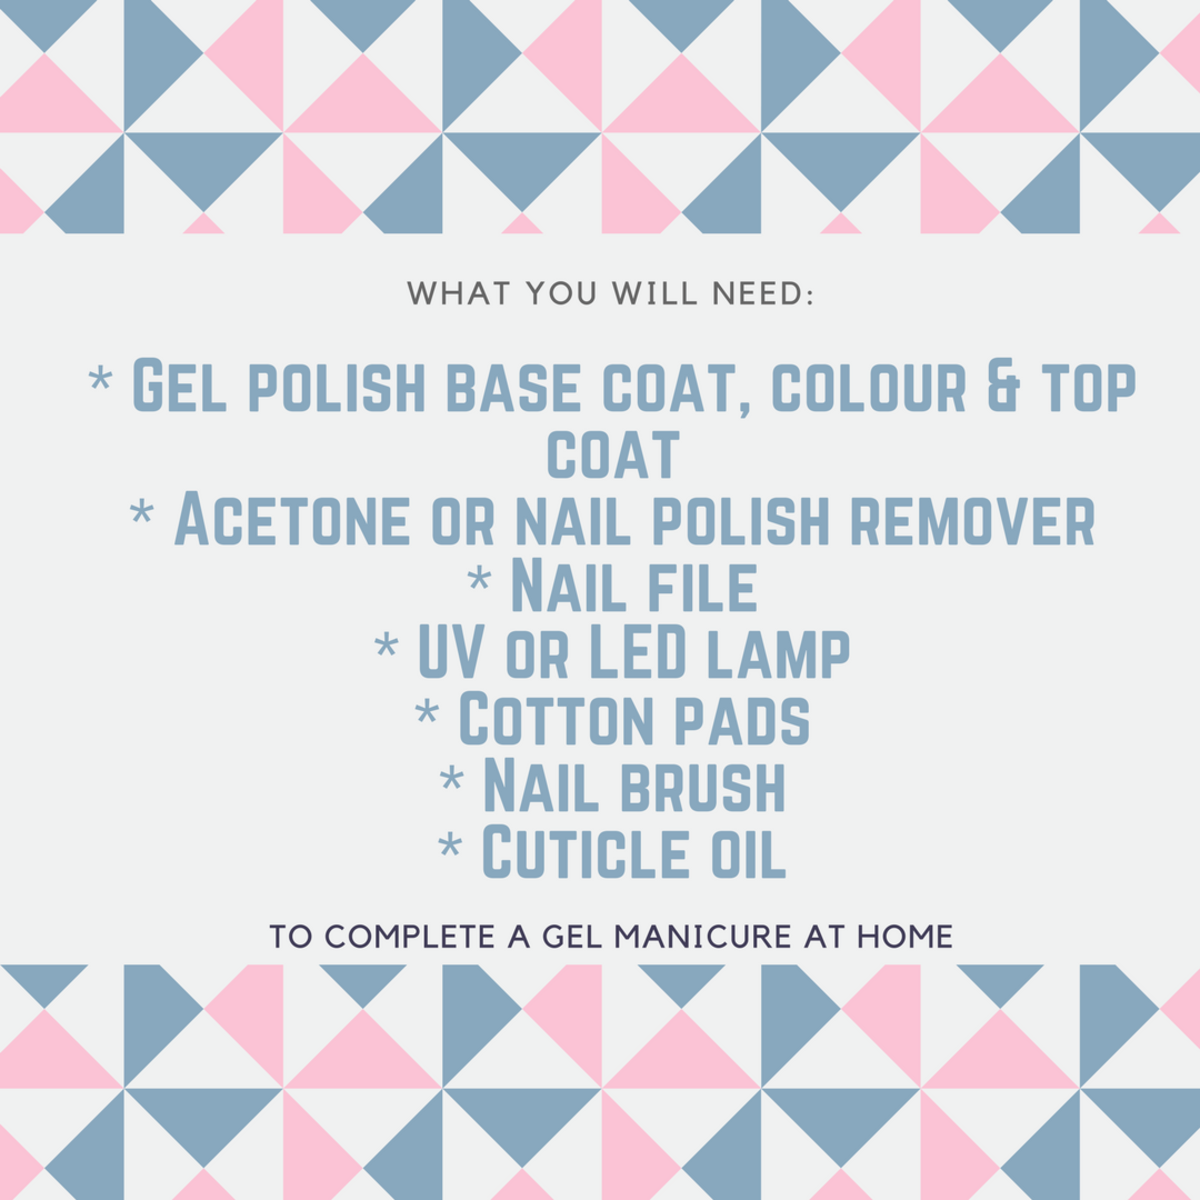 What you will need to complete a gel manicure at home.